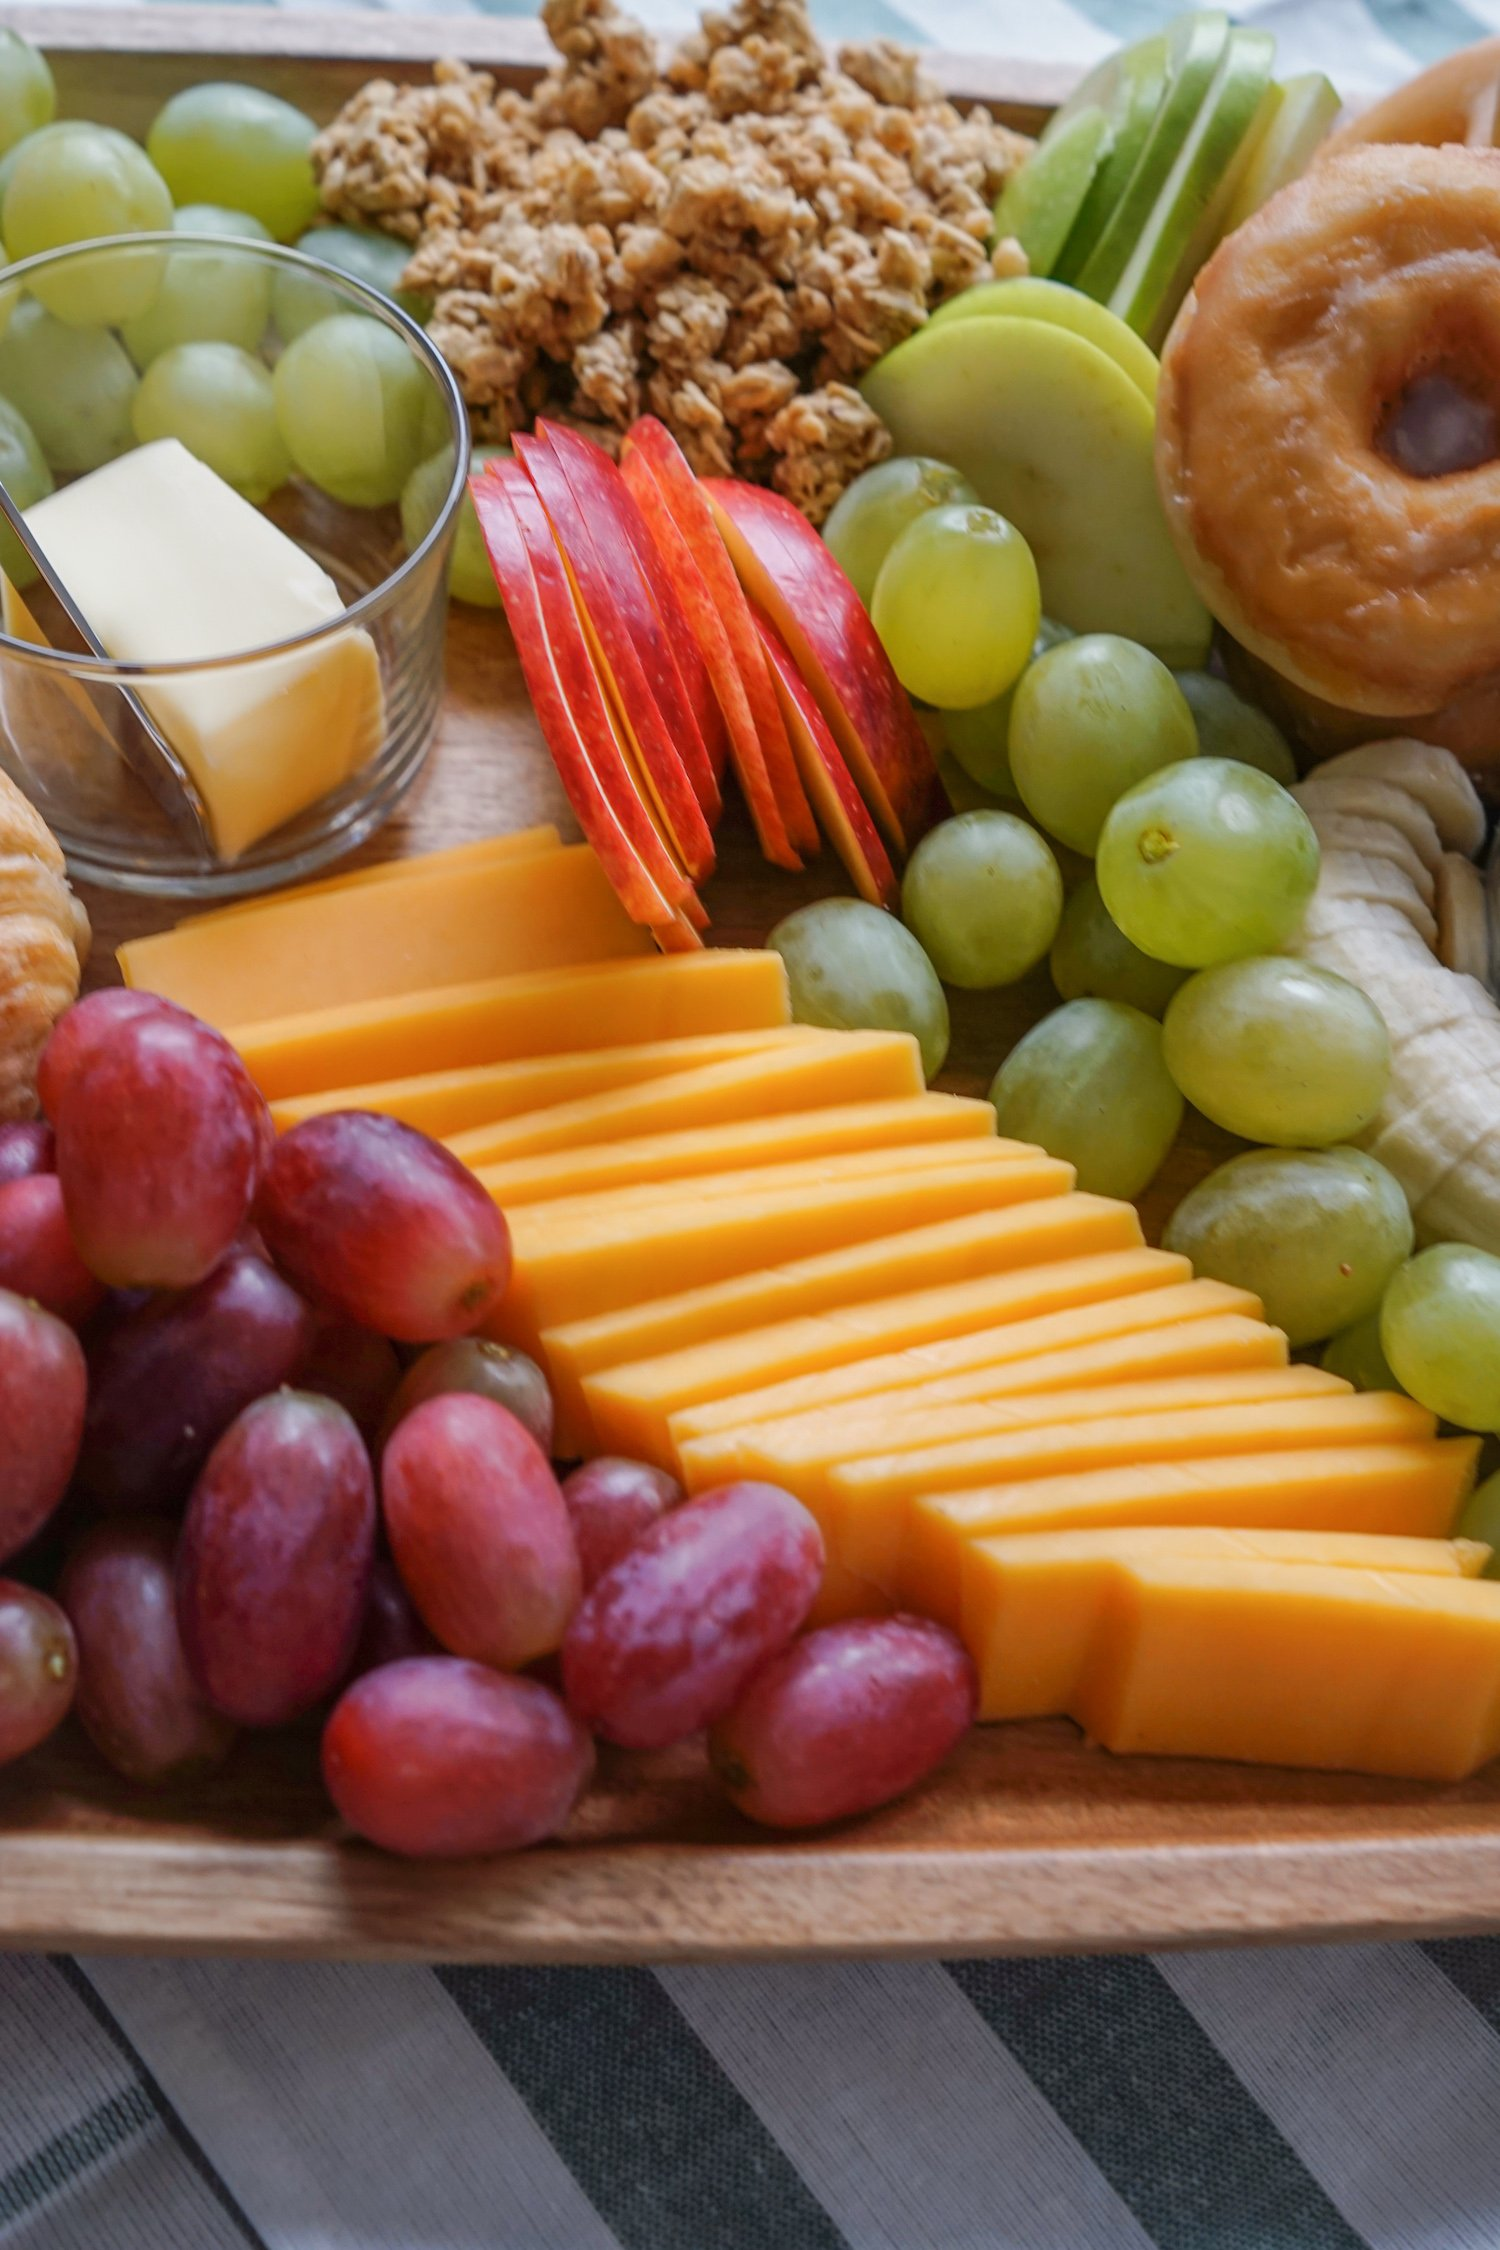 Breakfast Cheese Board - fill with pastries, cheese, fruit, etc.  So good!